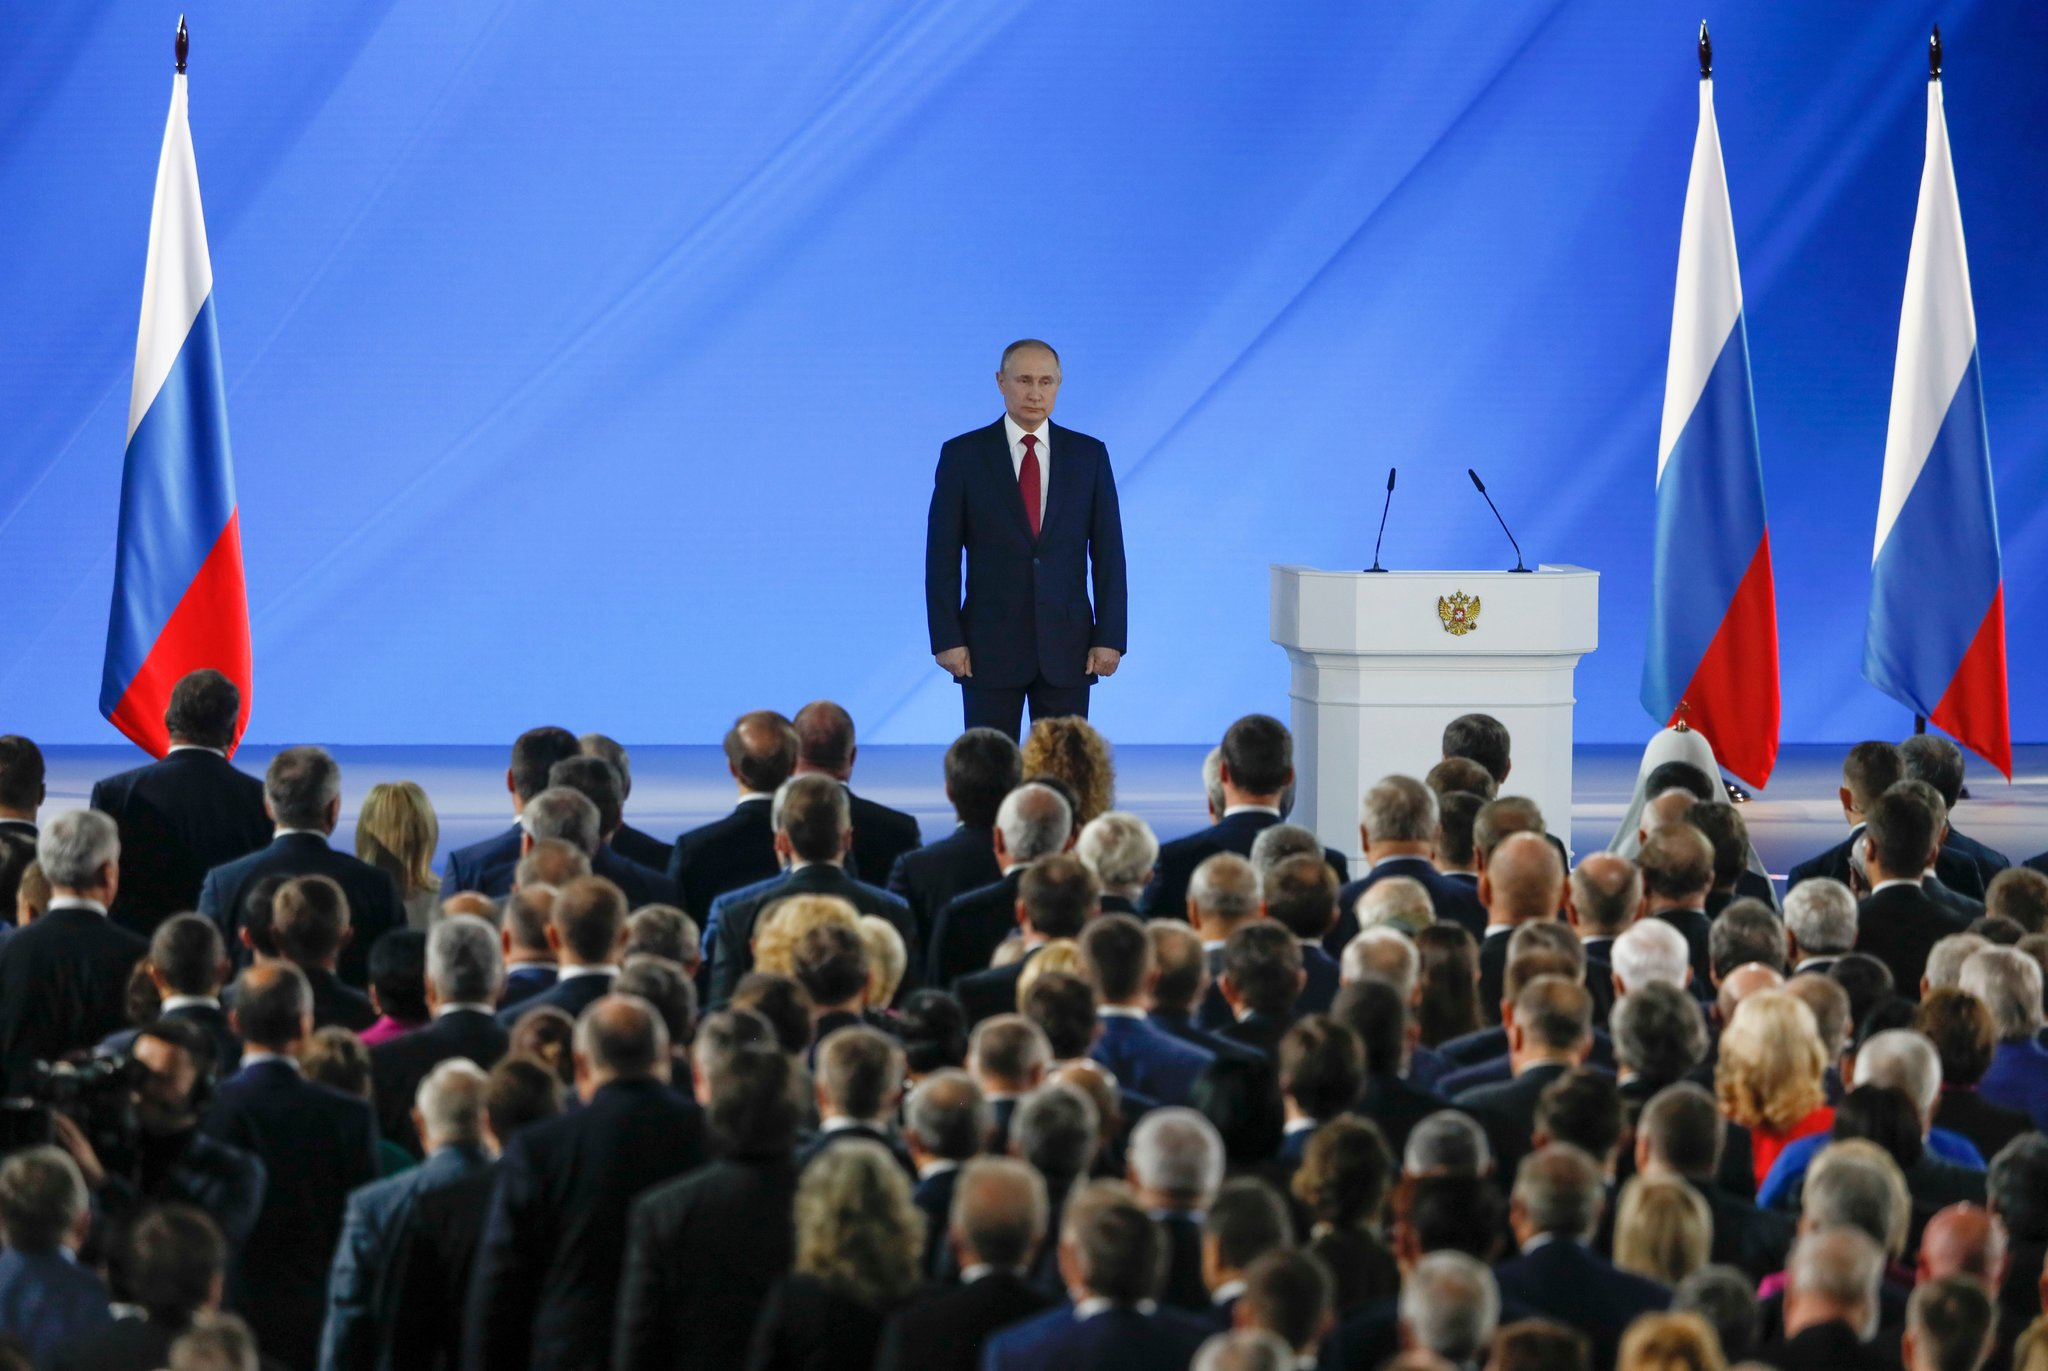 Mr. Putin delivered his annual state of the nation address in Moscow on Wednesday. He described the proposed constitutional changes as an effort to enhance democracy.